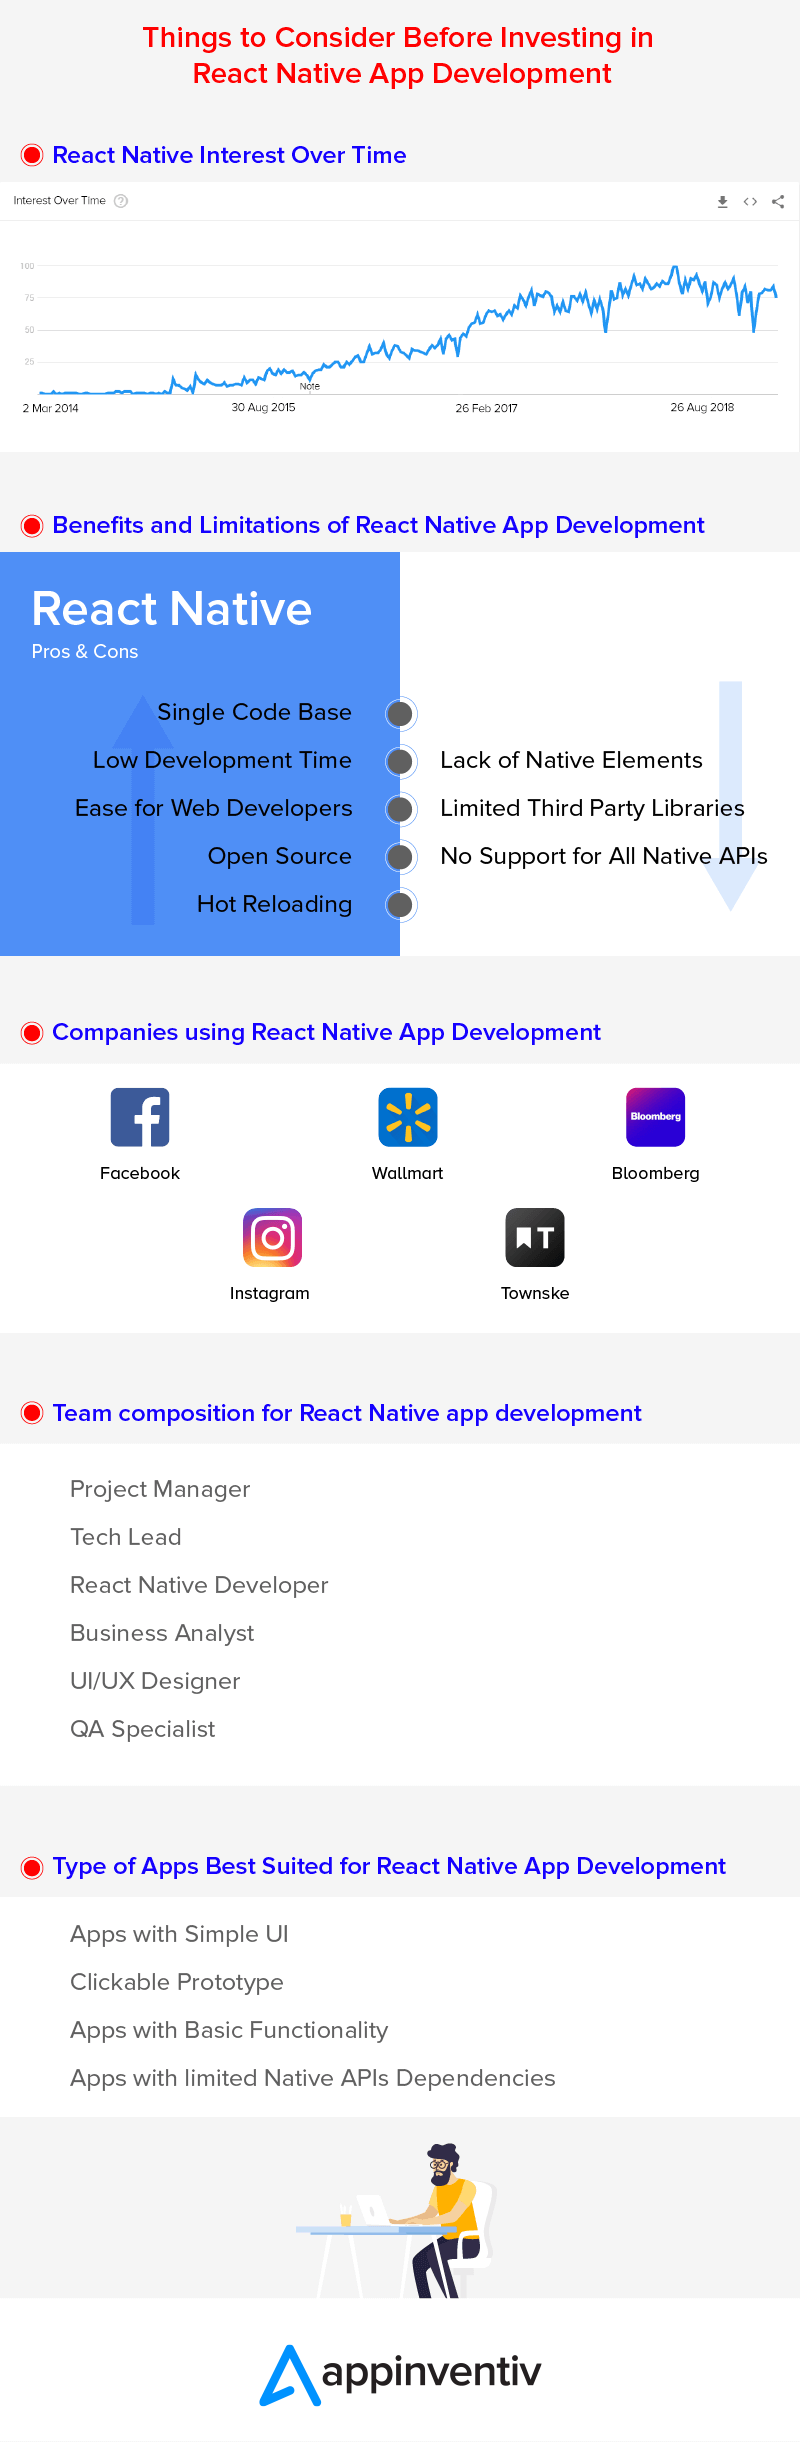 Things to Consider Before Investing in React Native App Development